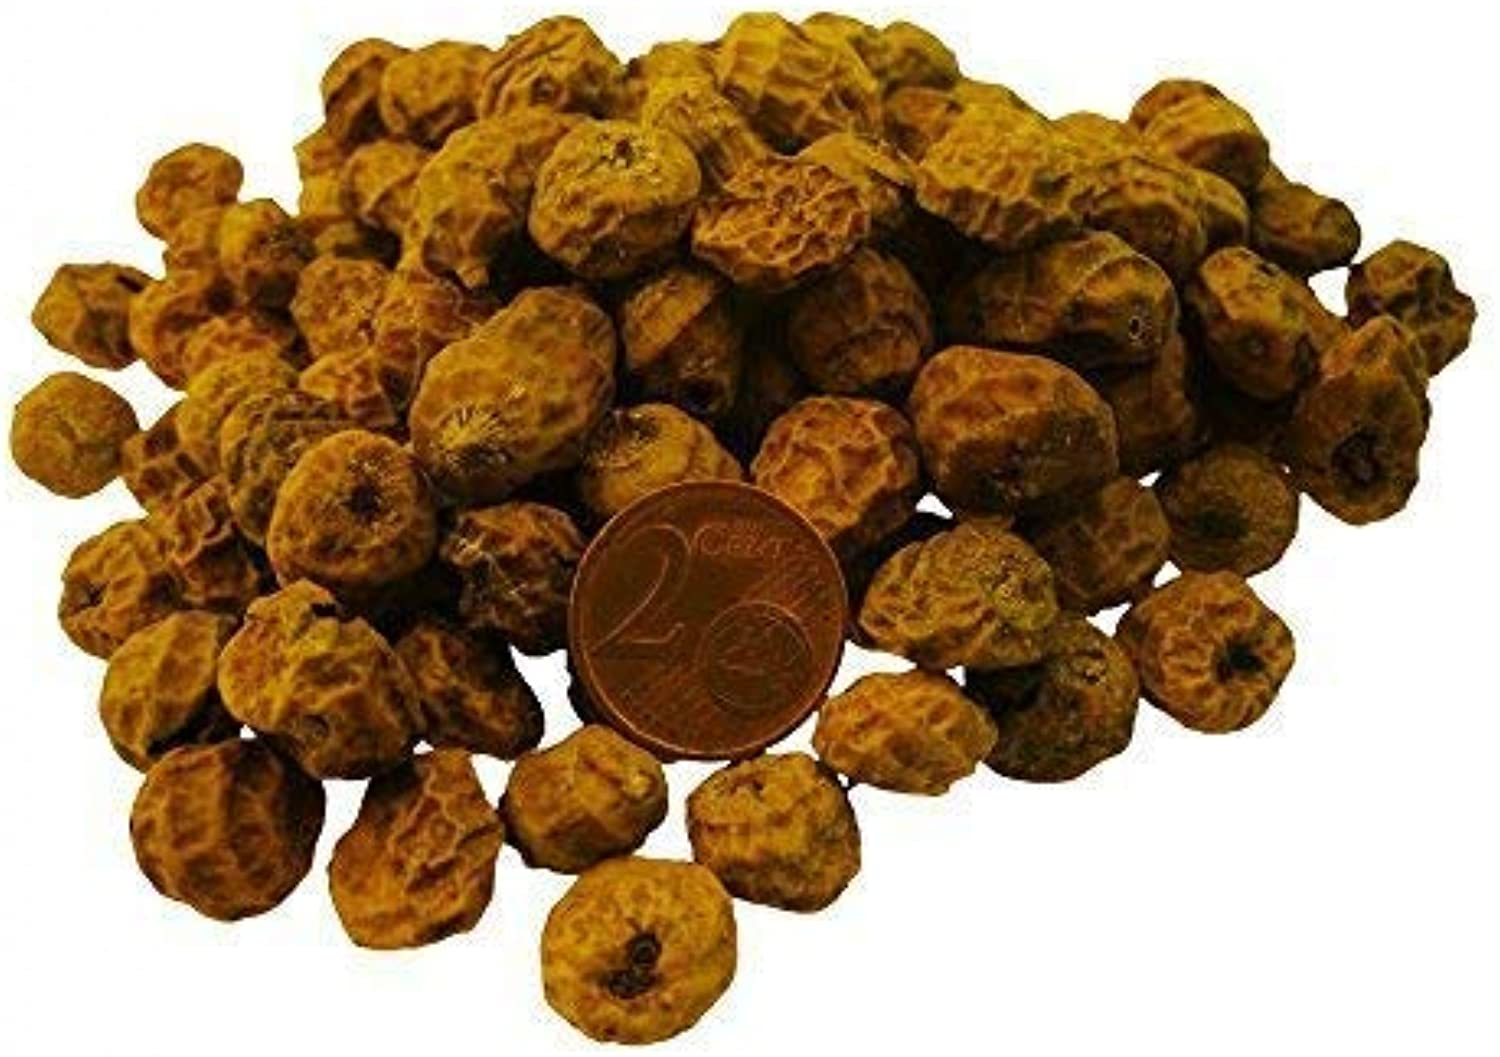 TIGERNüSSE JUMBO XXL ca. 12-22mm 25Kg Giant Tiger Nuts